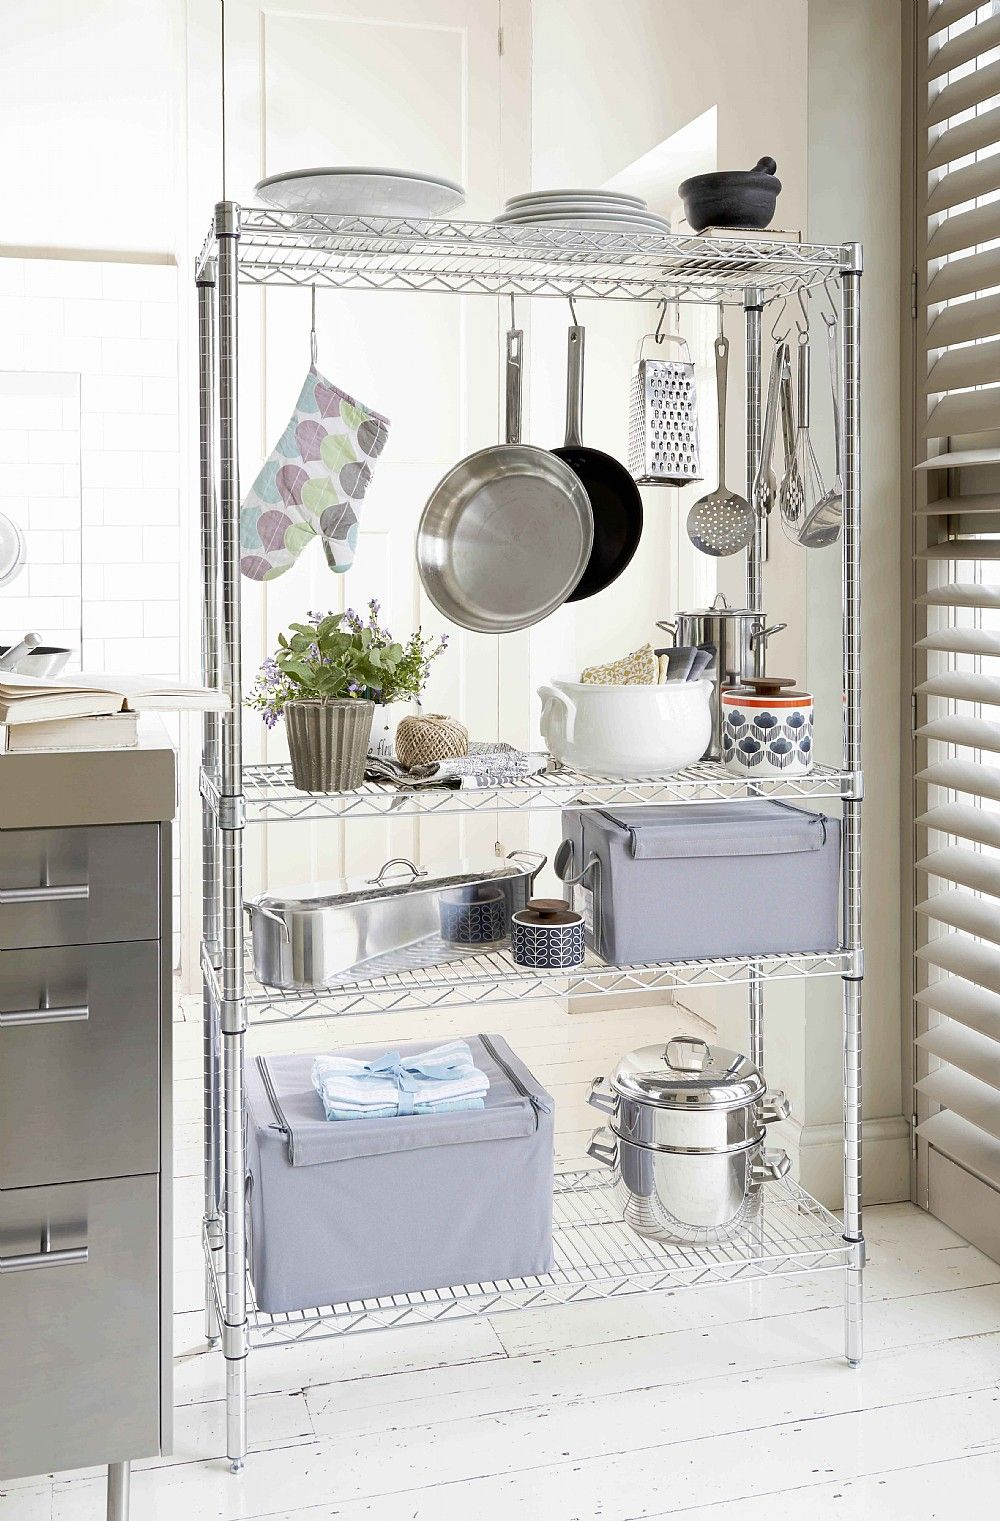 Chrome Kitchen Rack. Accessorize with hooks to hang pans and ...